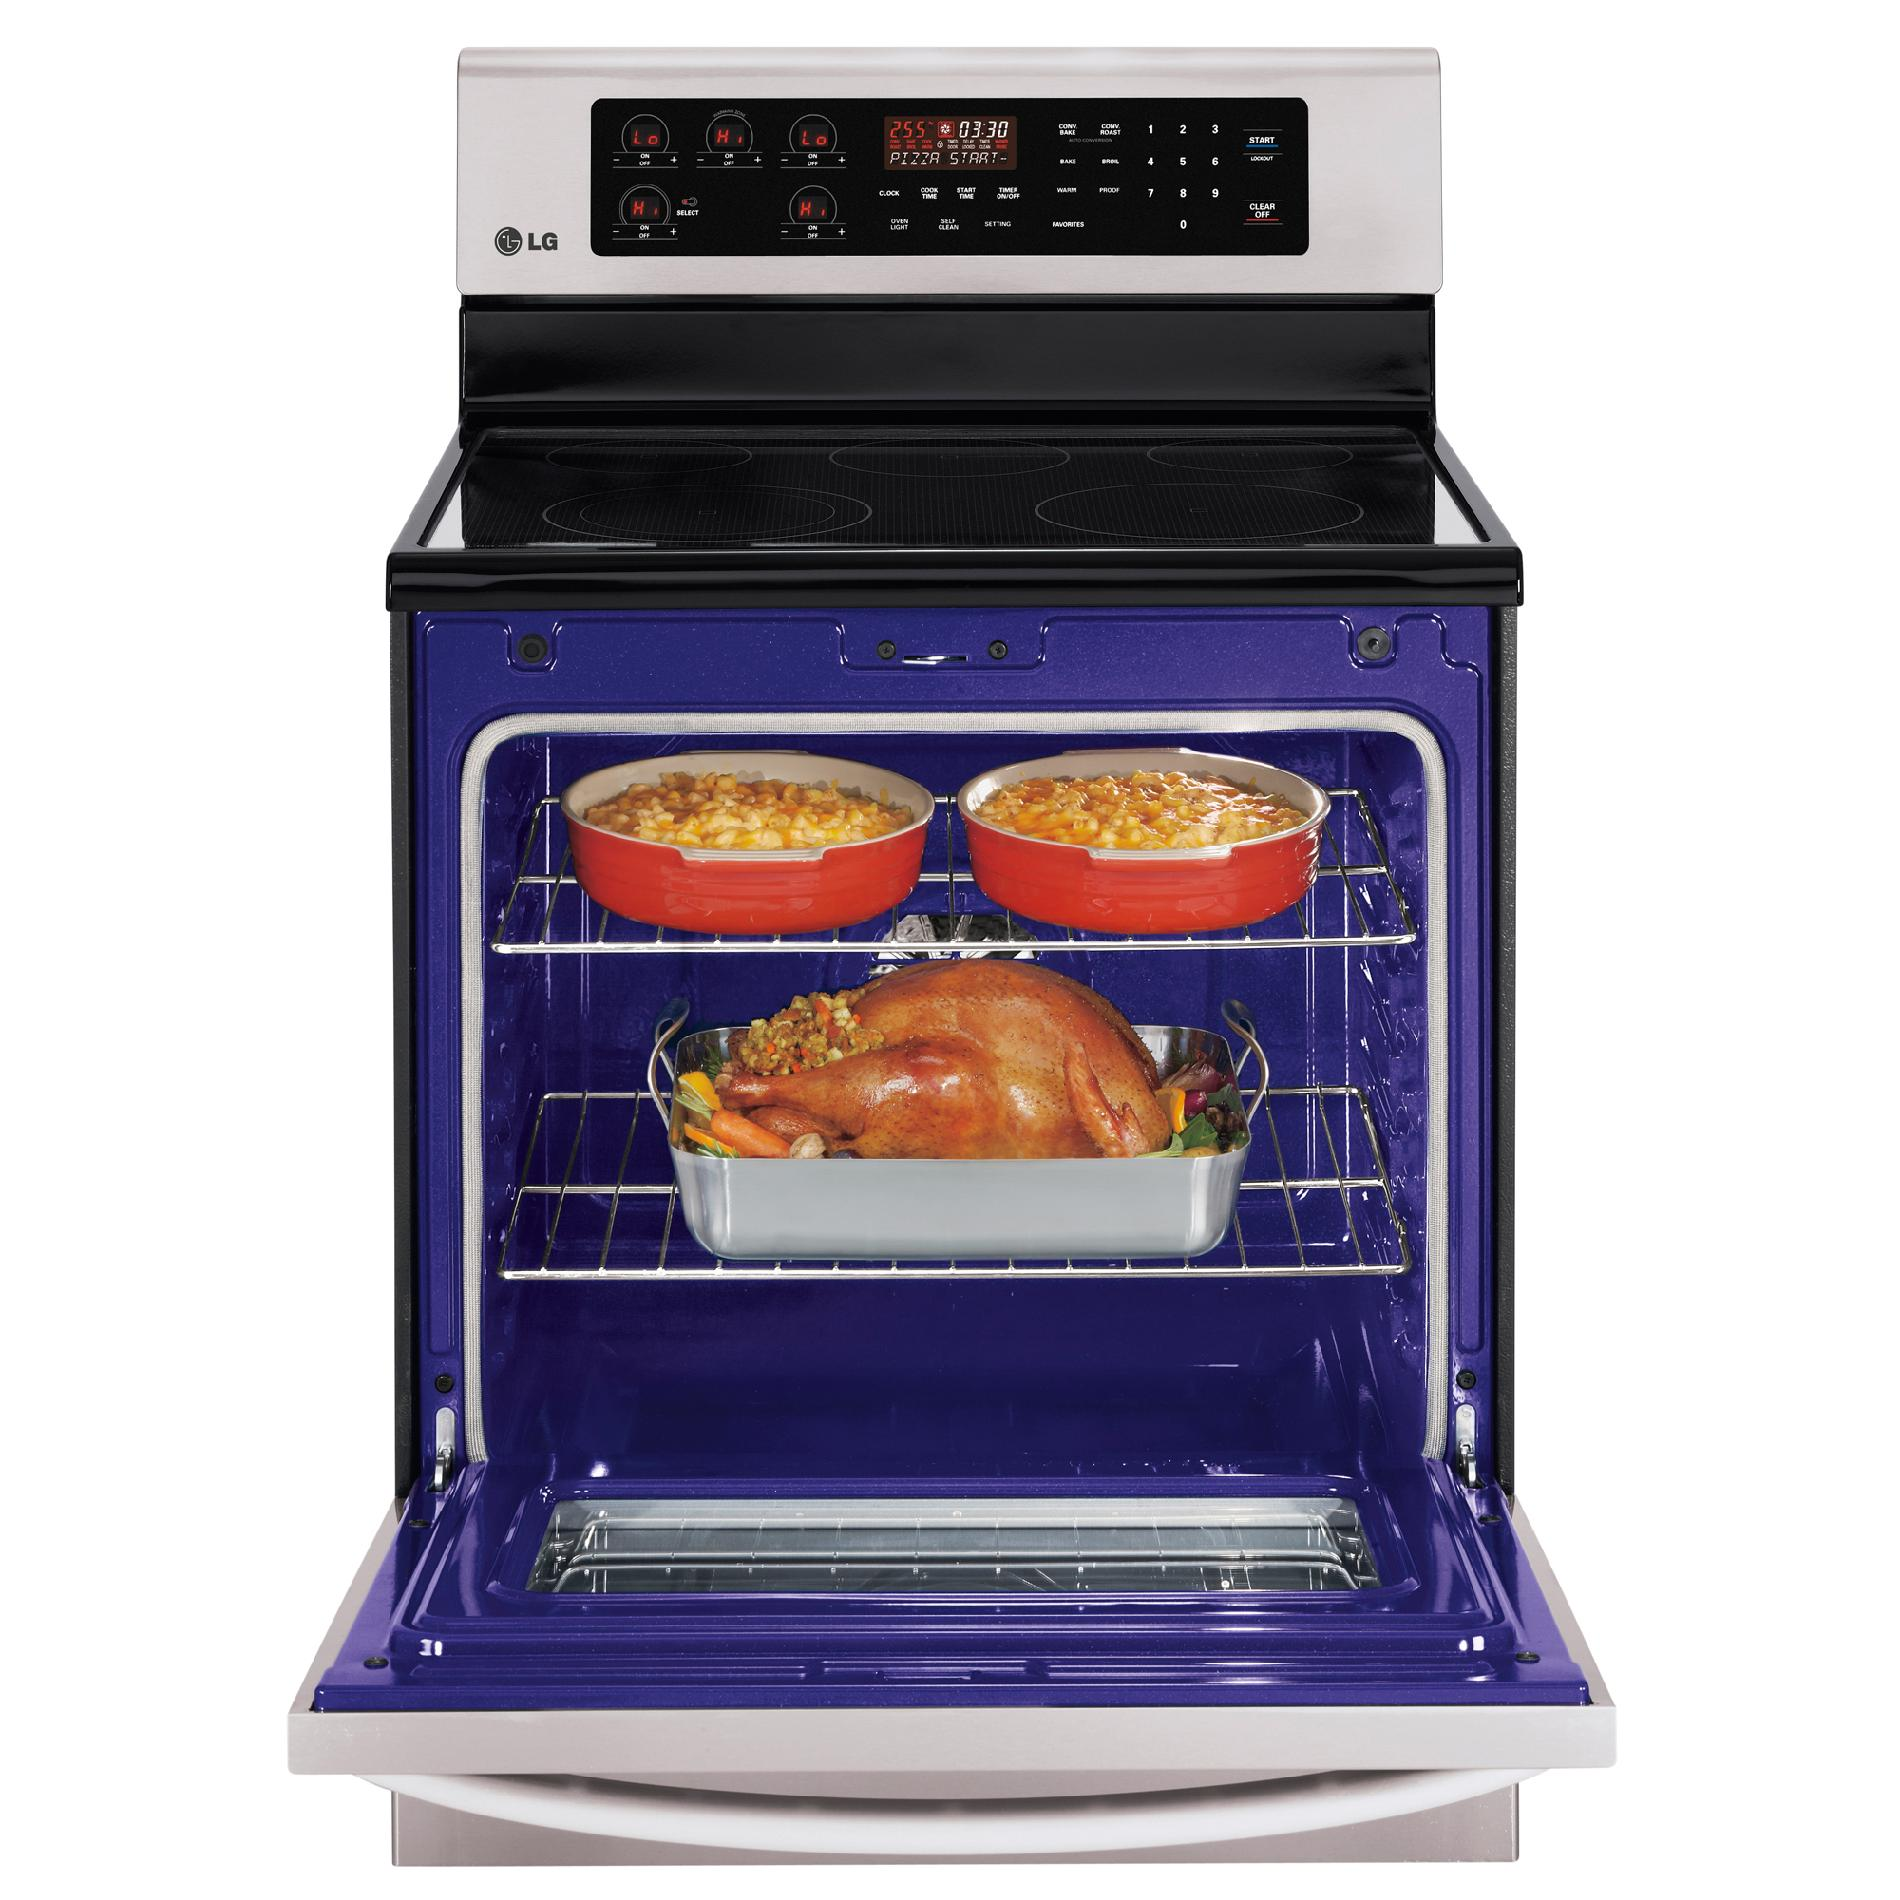 LG LRE3083ST 6.3 cu. ft. Free-Standing Electric Range - Stainless Steel